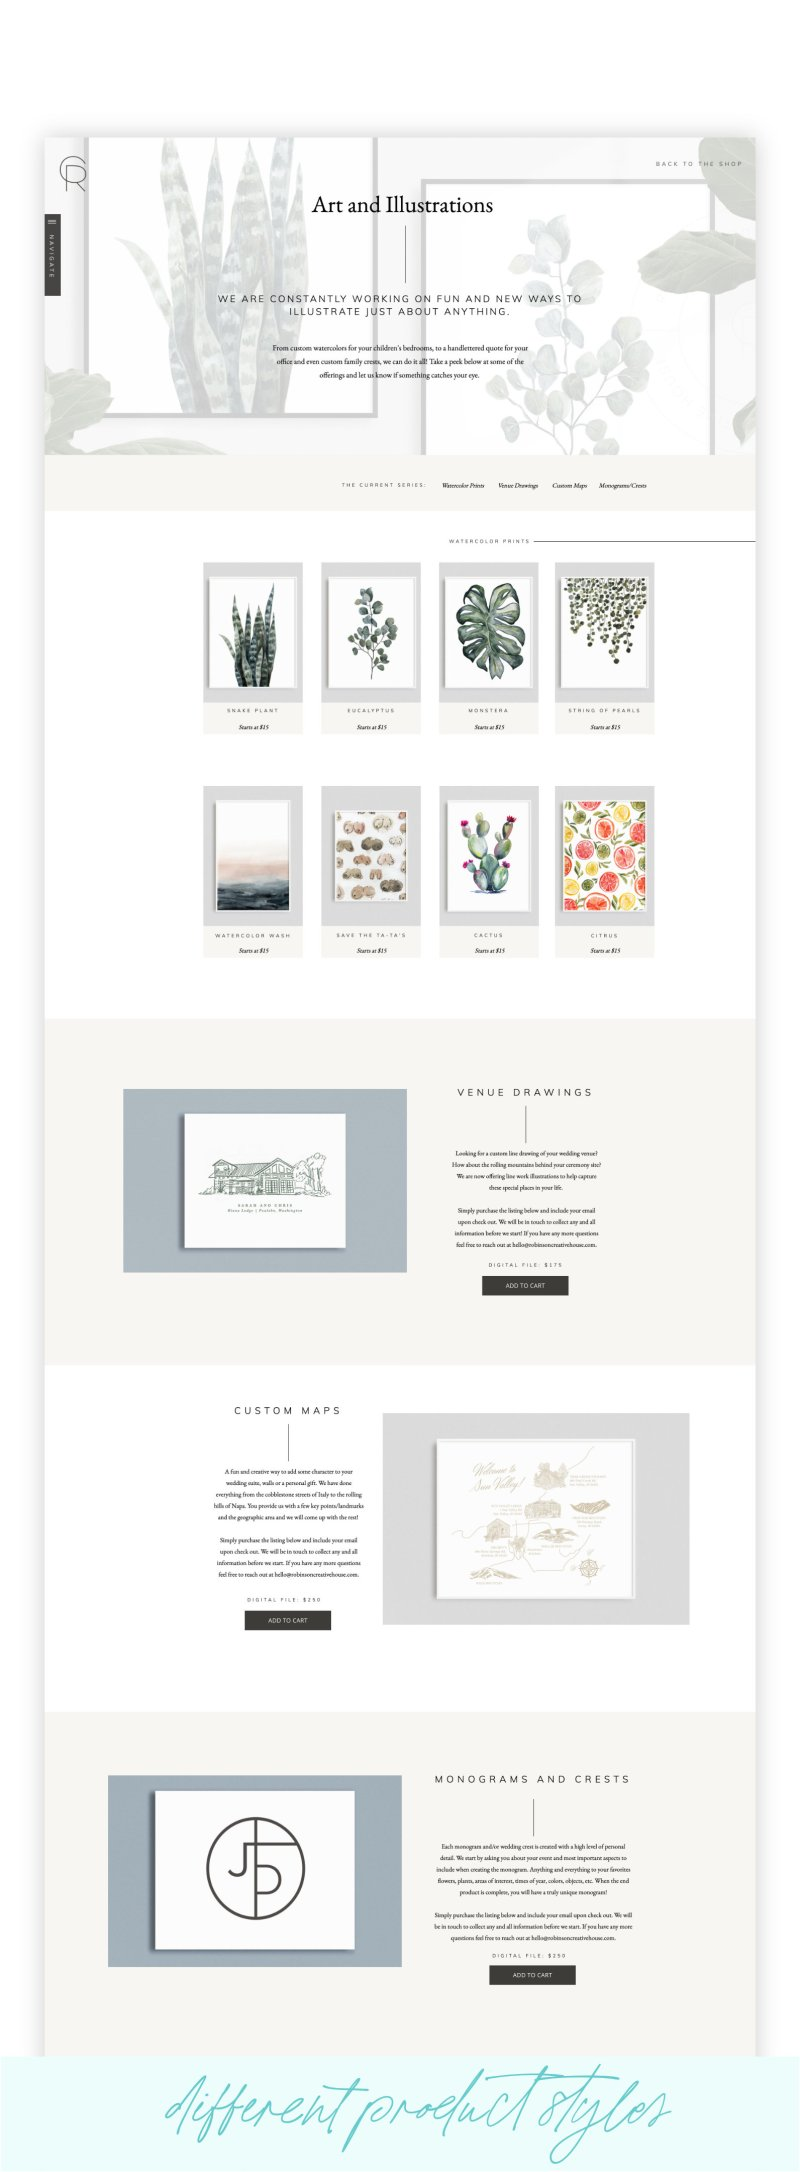 Arts and illustrations shop design in the Showit platform with multiple product styles.